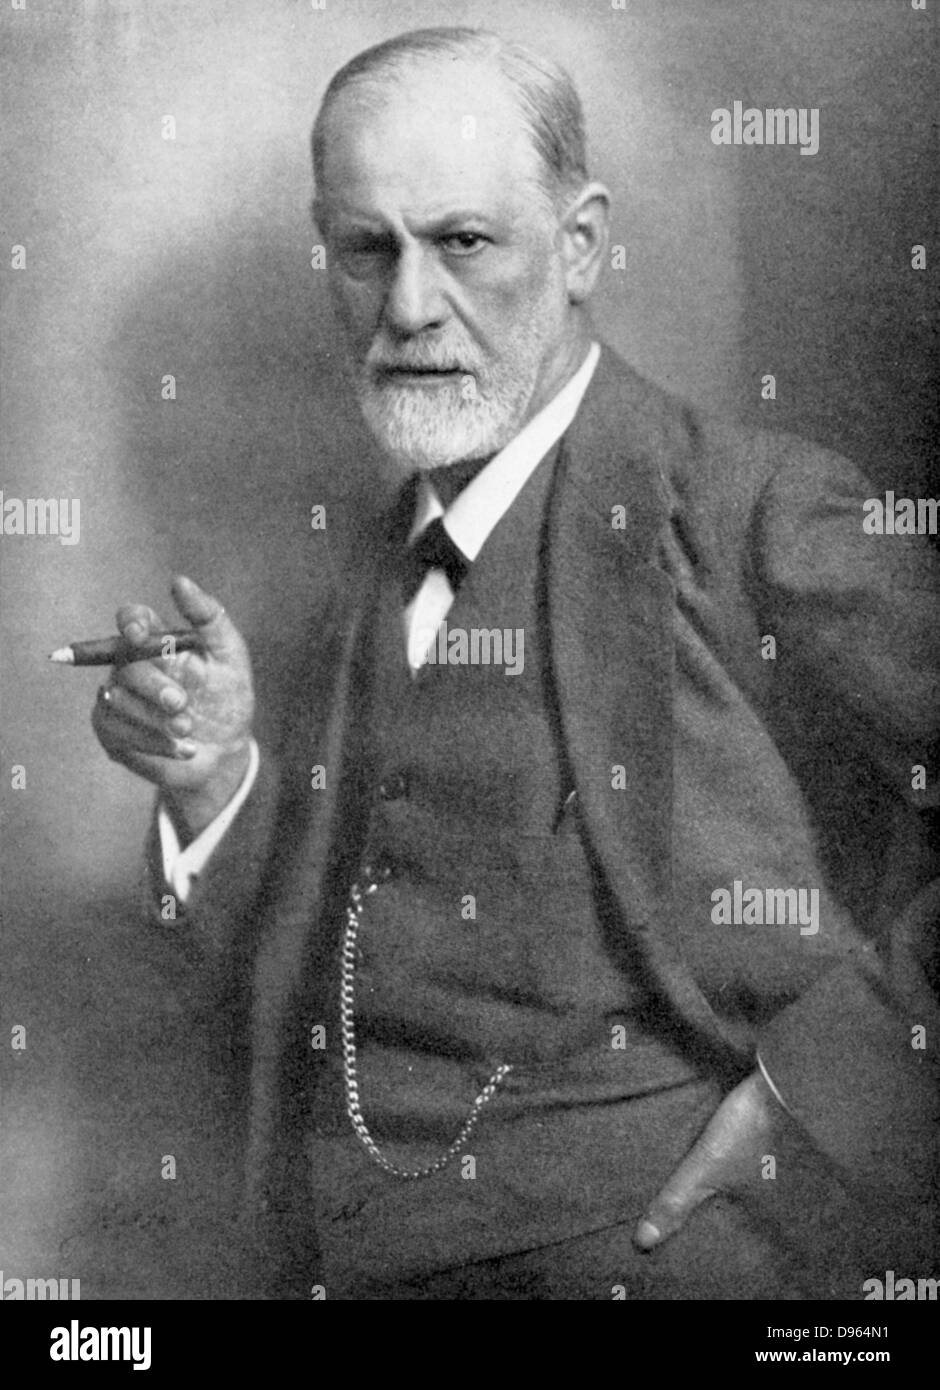 an introduction to the life of sigmund freud an austrian physician Sigmund freud was born in freiberg, moravia (part of the austro-hungarian empire), in 1856, to a jewish family the freuds soon relocated to vienna, and in 1873 young freud began studying medicine at the university of vienna.